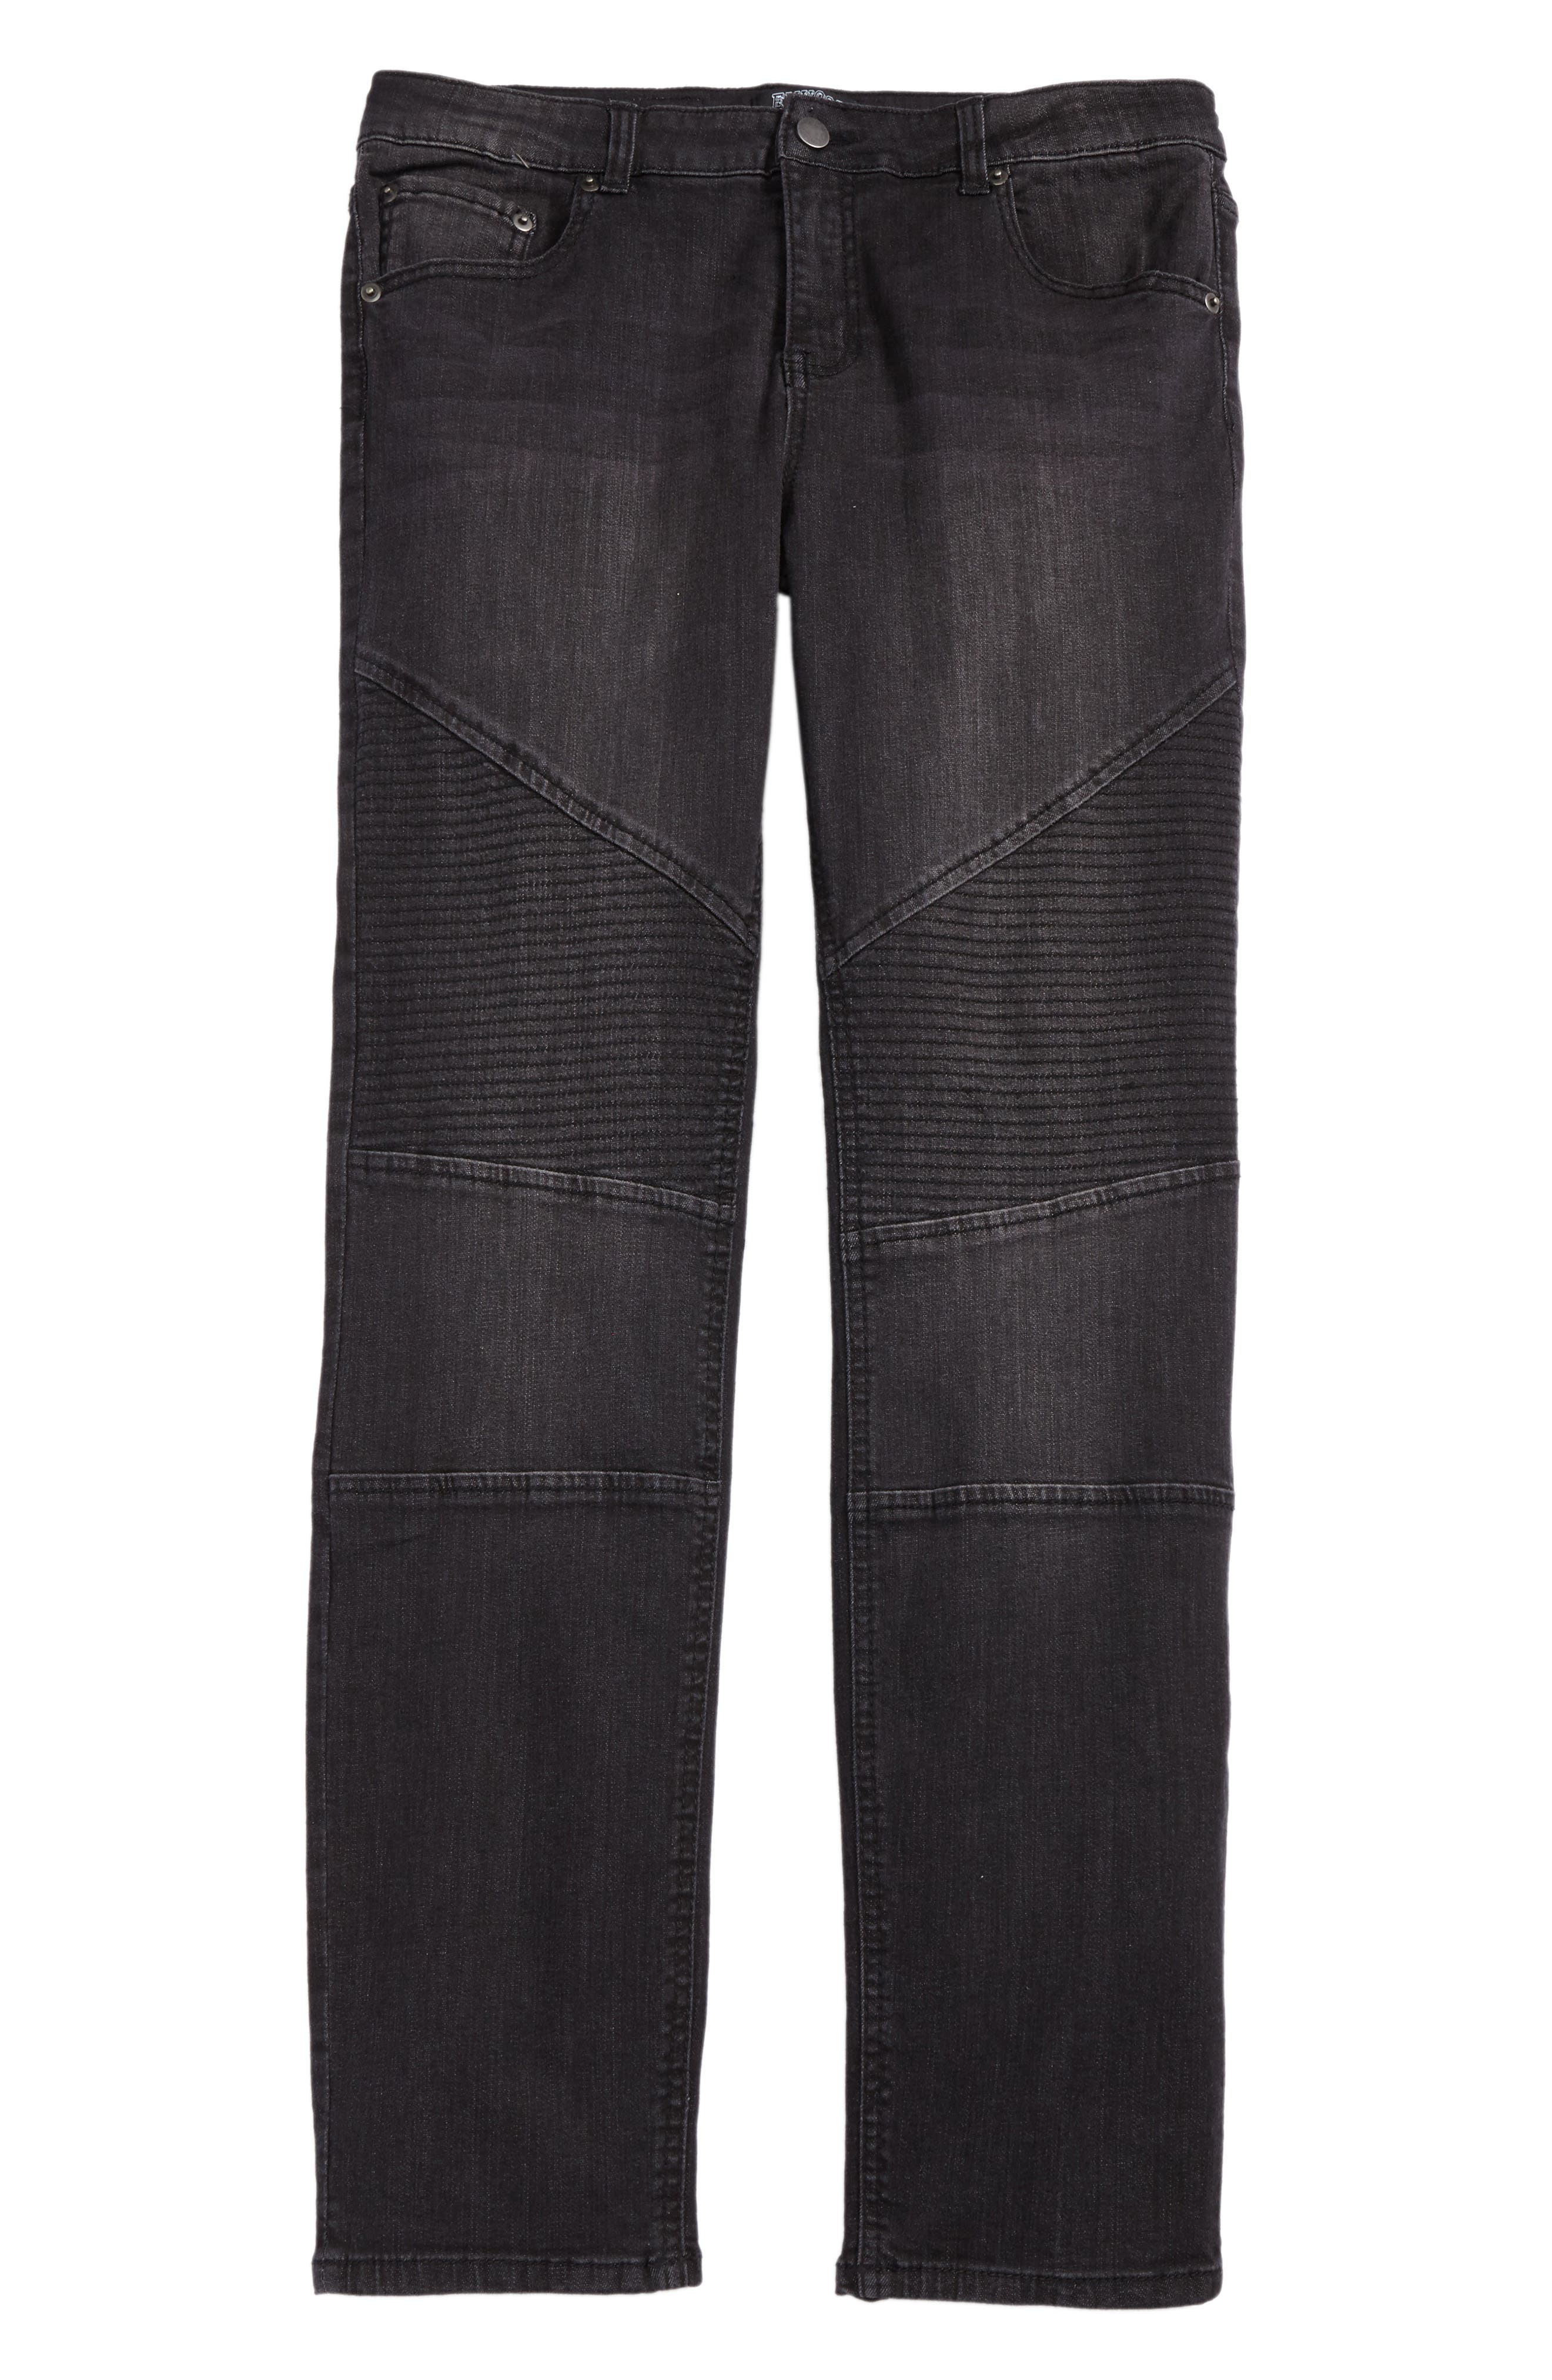 Straight Leg Moto Jeans,                             Main thumbnail 1, color,                             031